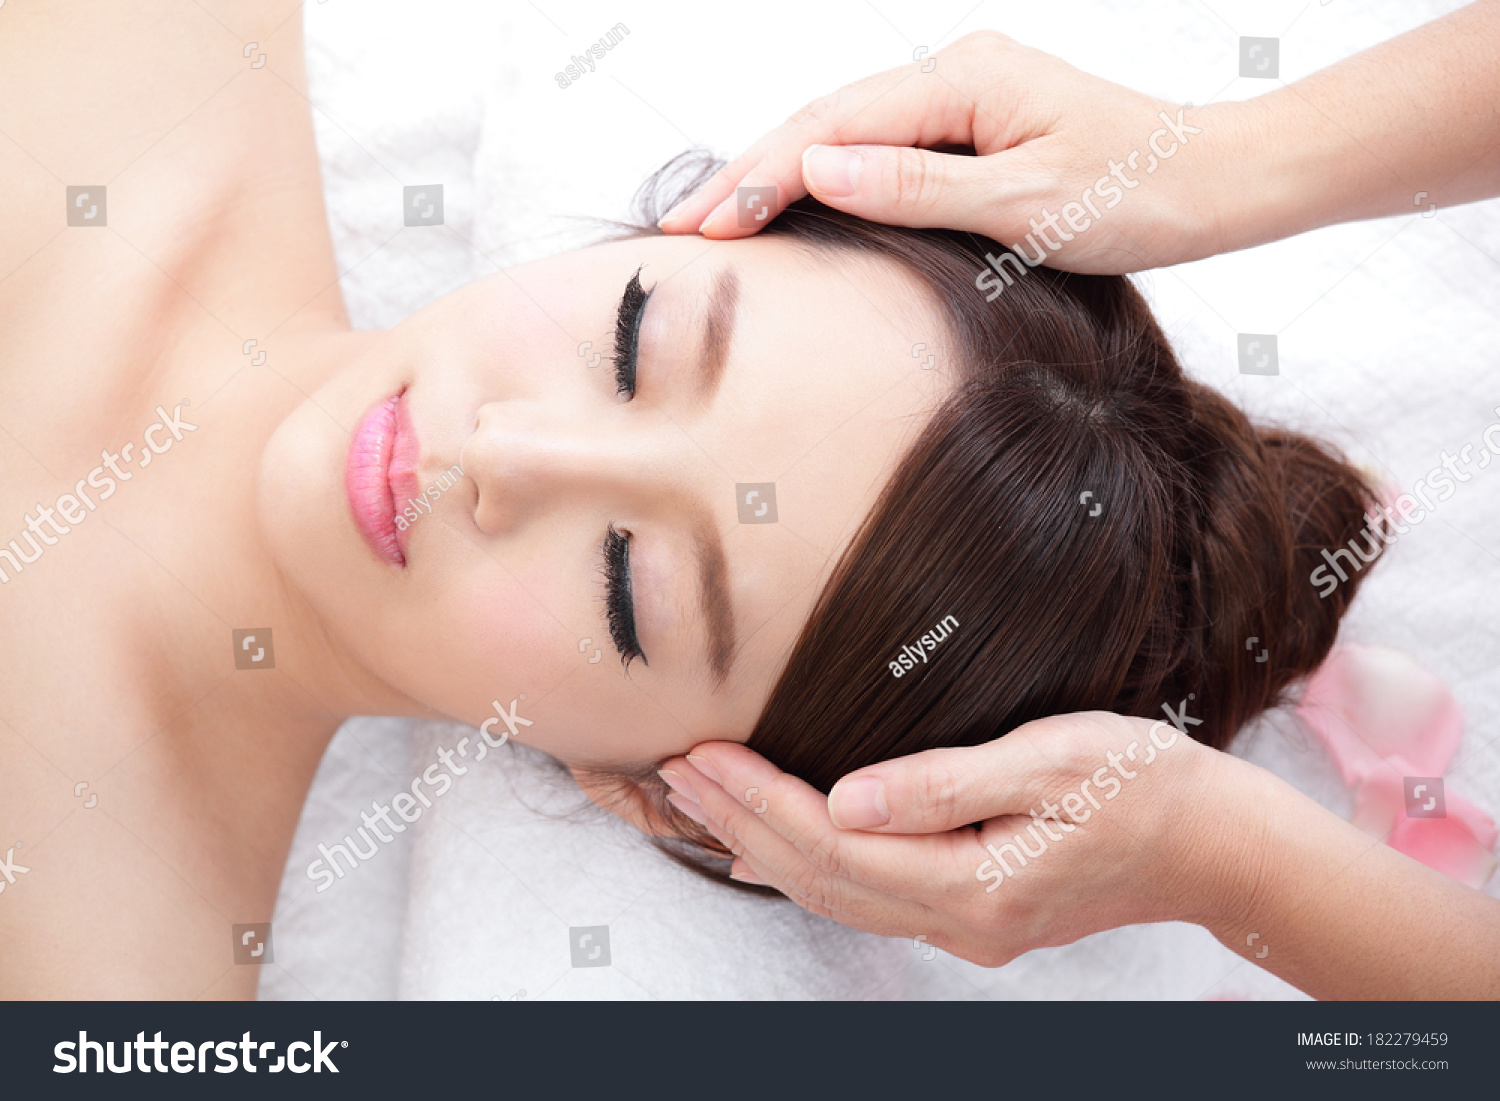 https://www.mcubestudio.com.au/wp-content/uploads/2020/02/stock-photo-beautiful-young-woman-enjoy-face-massage-at-spa-with-roses-asian-beauty-182279459.jpg